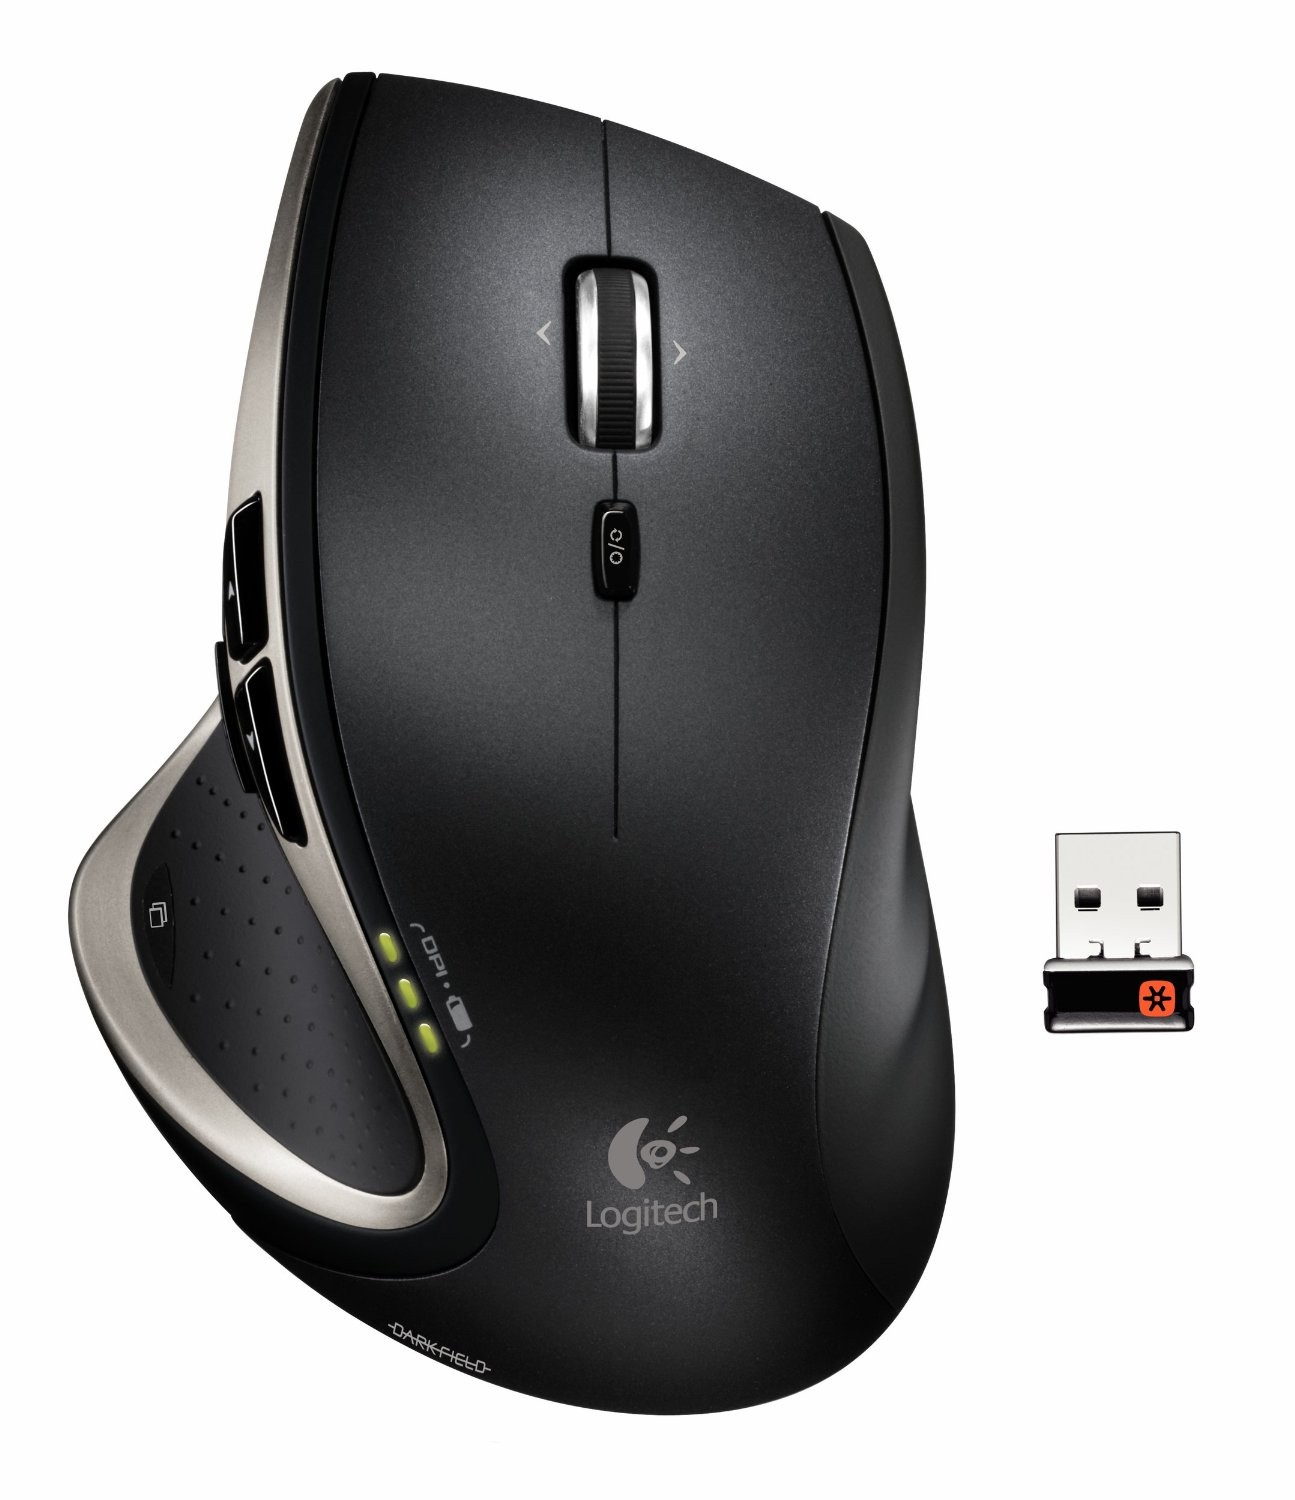 Logitech Performance Maus MX Cordless USB schwarz